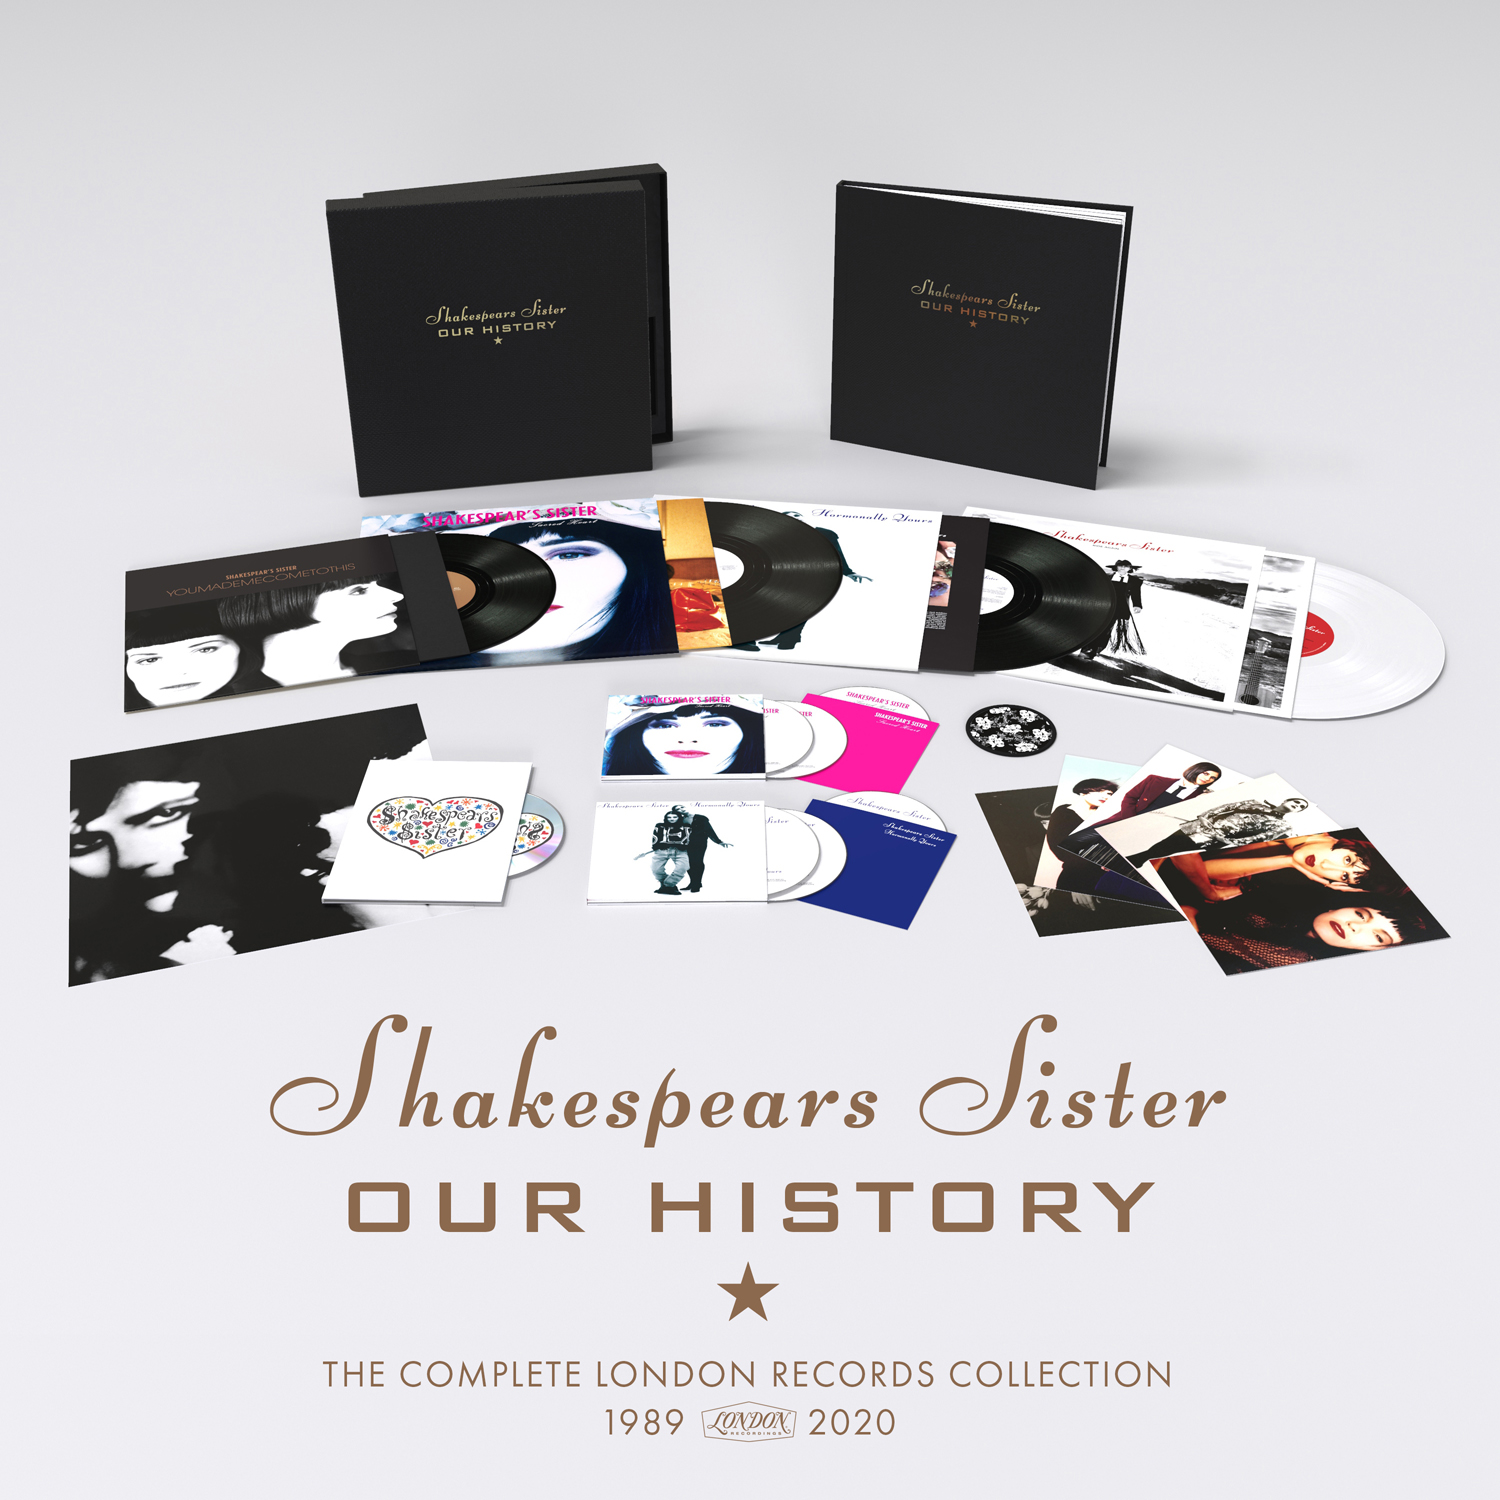 Our History (The Complete London Records Collection)